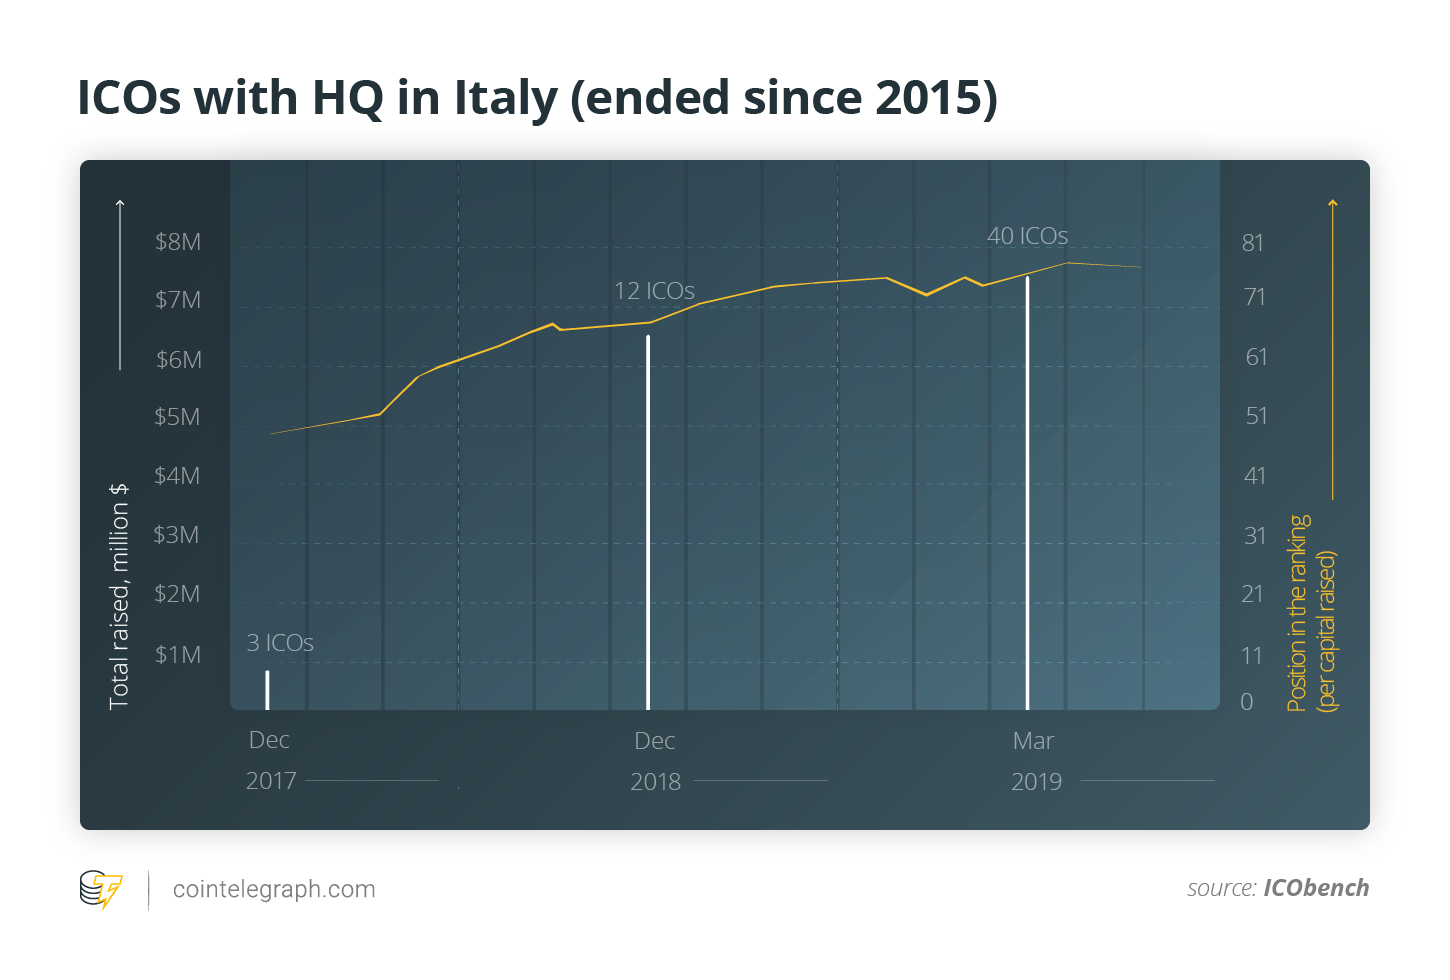 ICOs with HQ in Italy (ended since 2015)